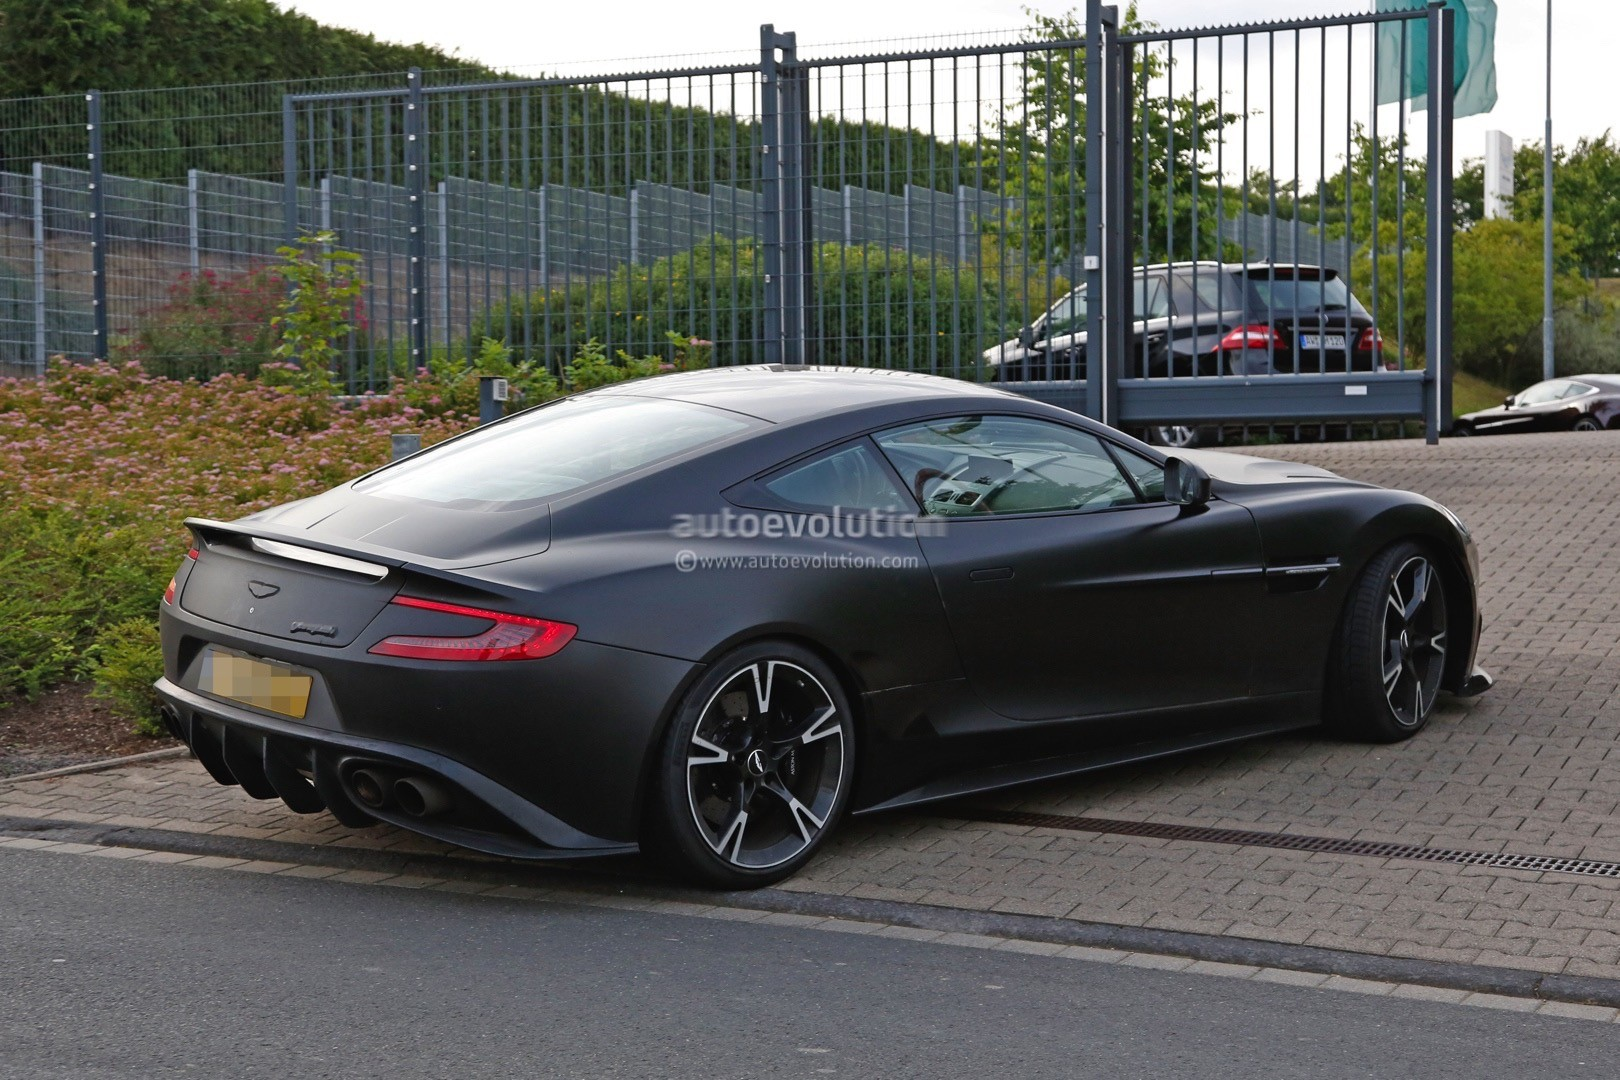 aston martin db9 or v8 vantage html with 2018 Aston Martin Vanquish S Spied For The First Time 109359 on Aston Martin Dbs 2008 additionally Aston Martin One 77 Wallpaper Black 1 together with Photos also Rubber Button Cover likewise 43908.